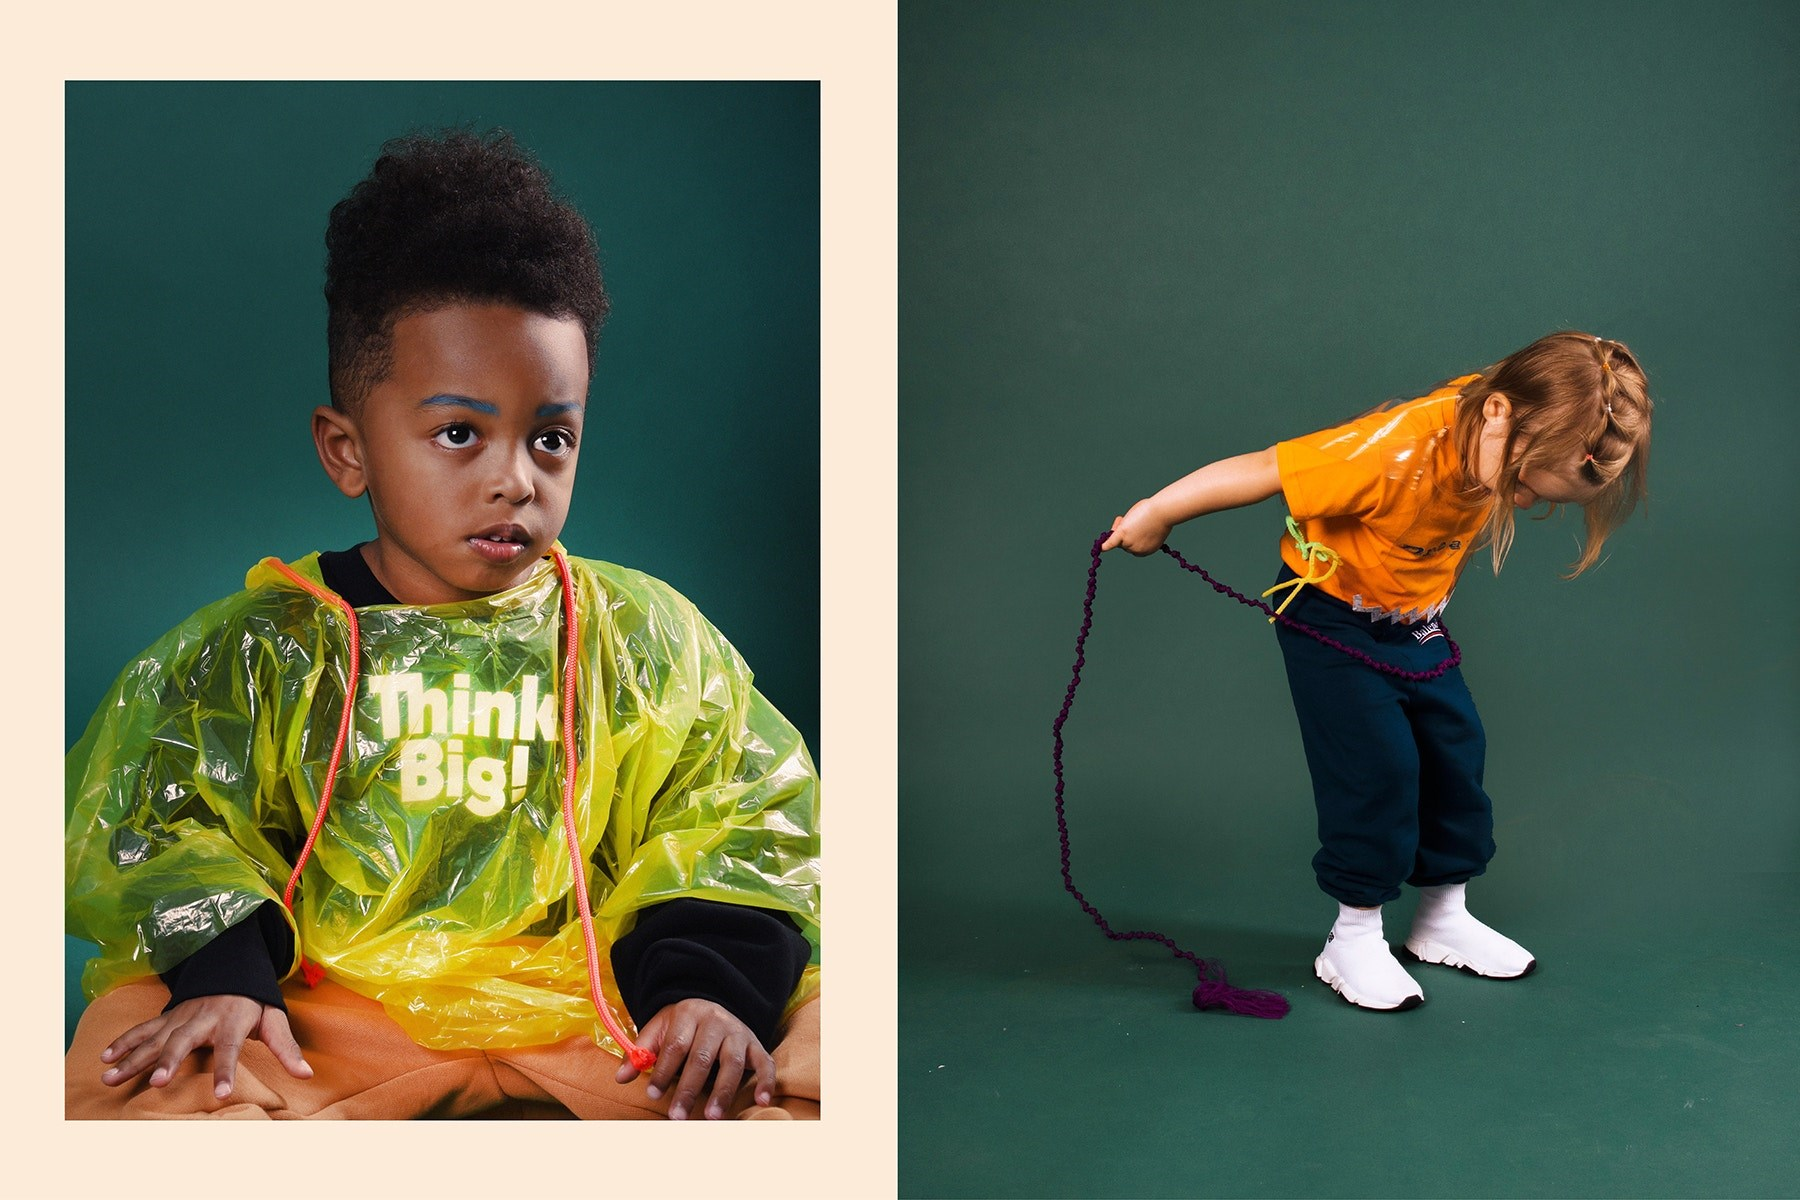 Balenciaga Launches its First Children's Line